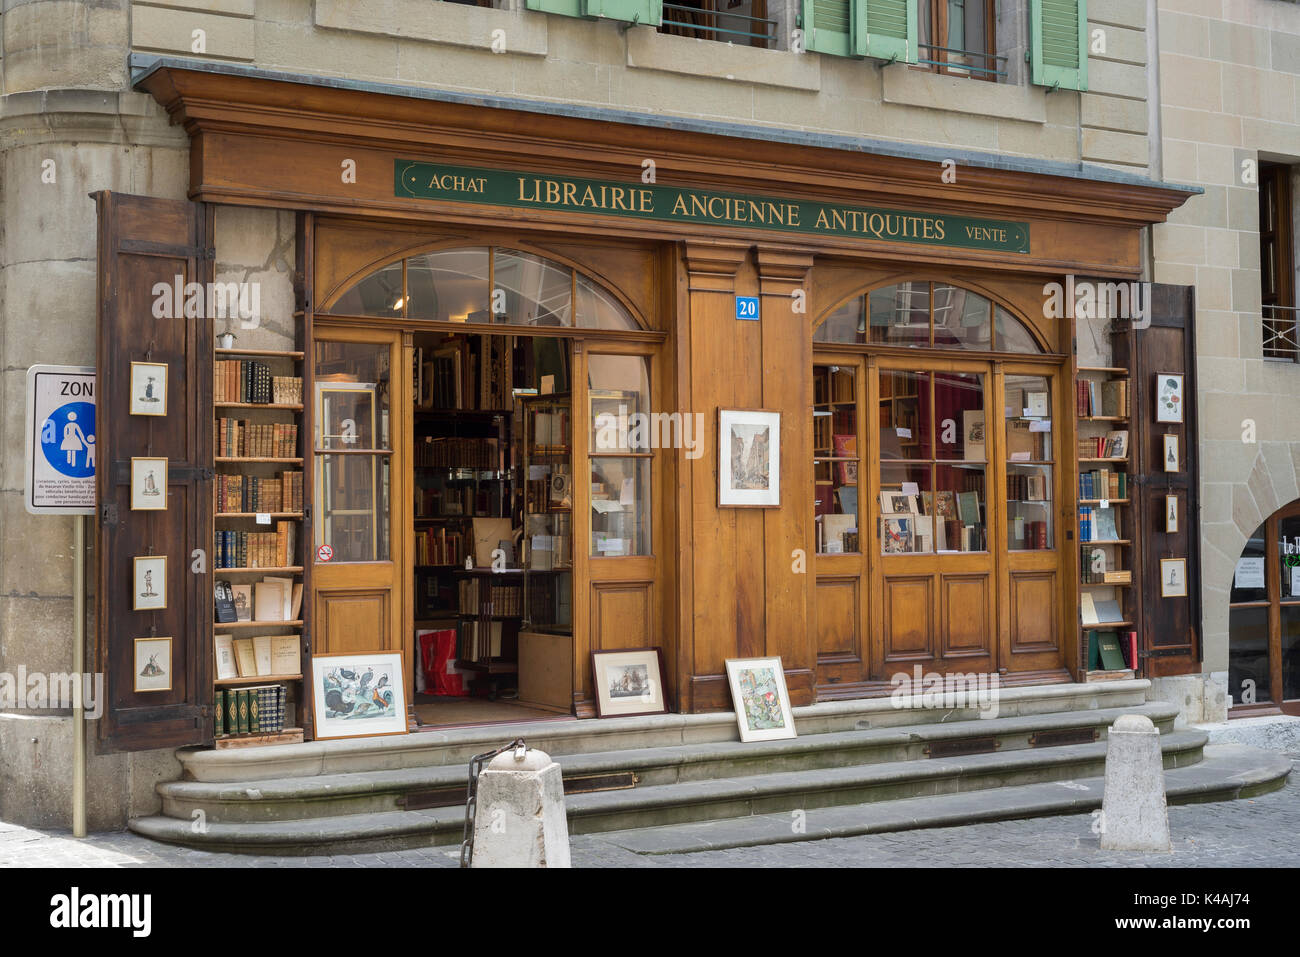 Second hand bookstore with wooden facade, Grand Rue, Old Town, Geneva, Switzerland Stock Photo